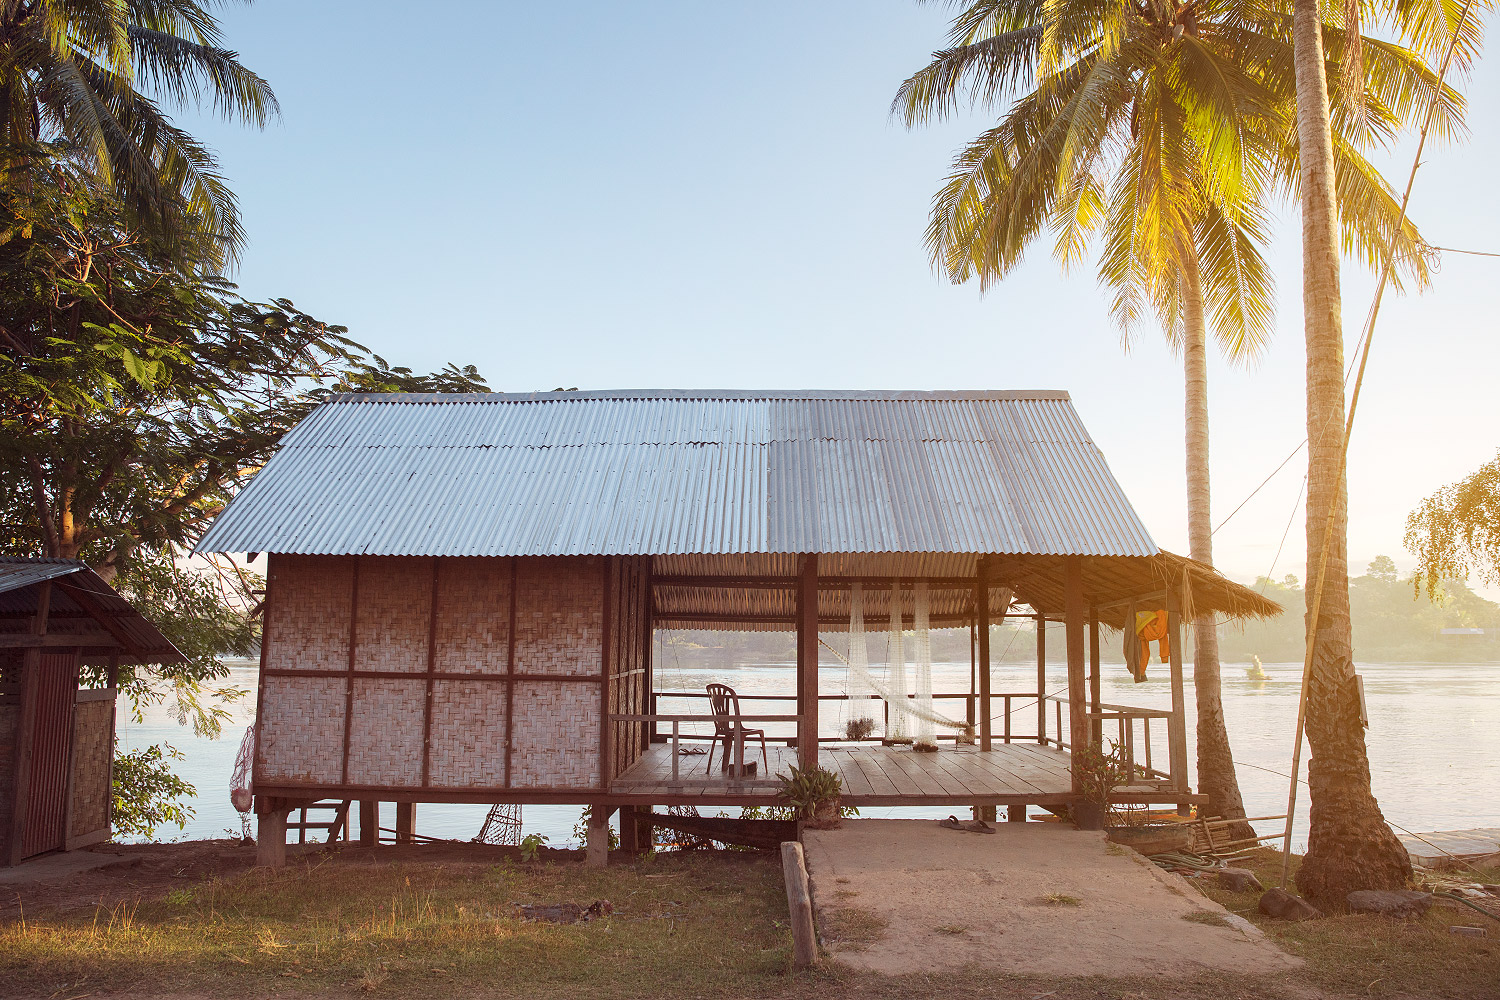 Laos Reiseblog: River House auf Don Det in den 4000 Islands © PhotoTravelNomads.com